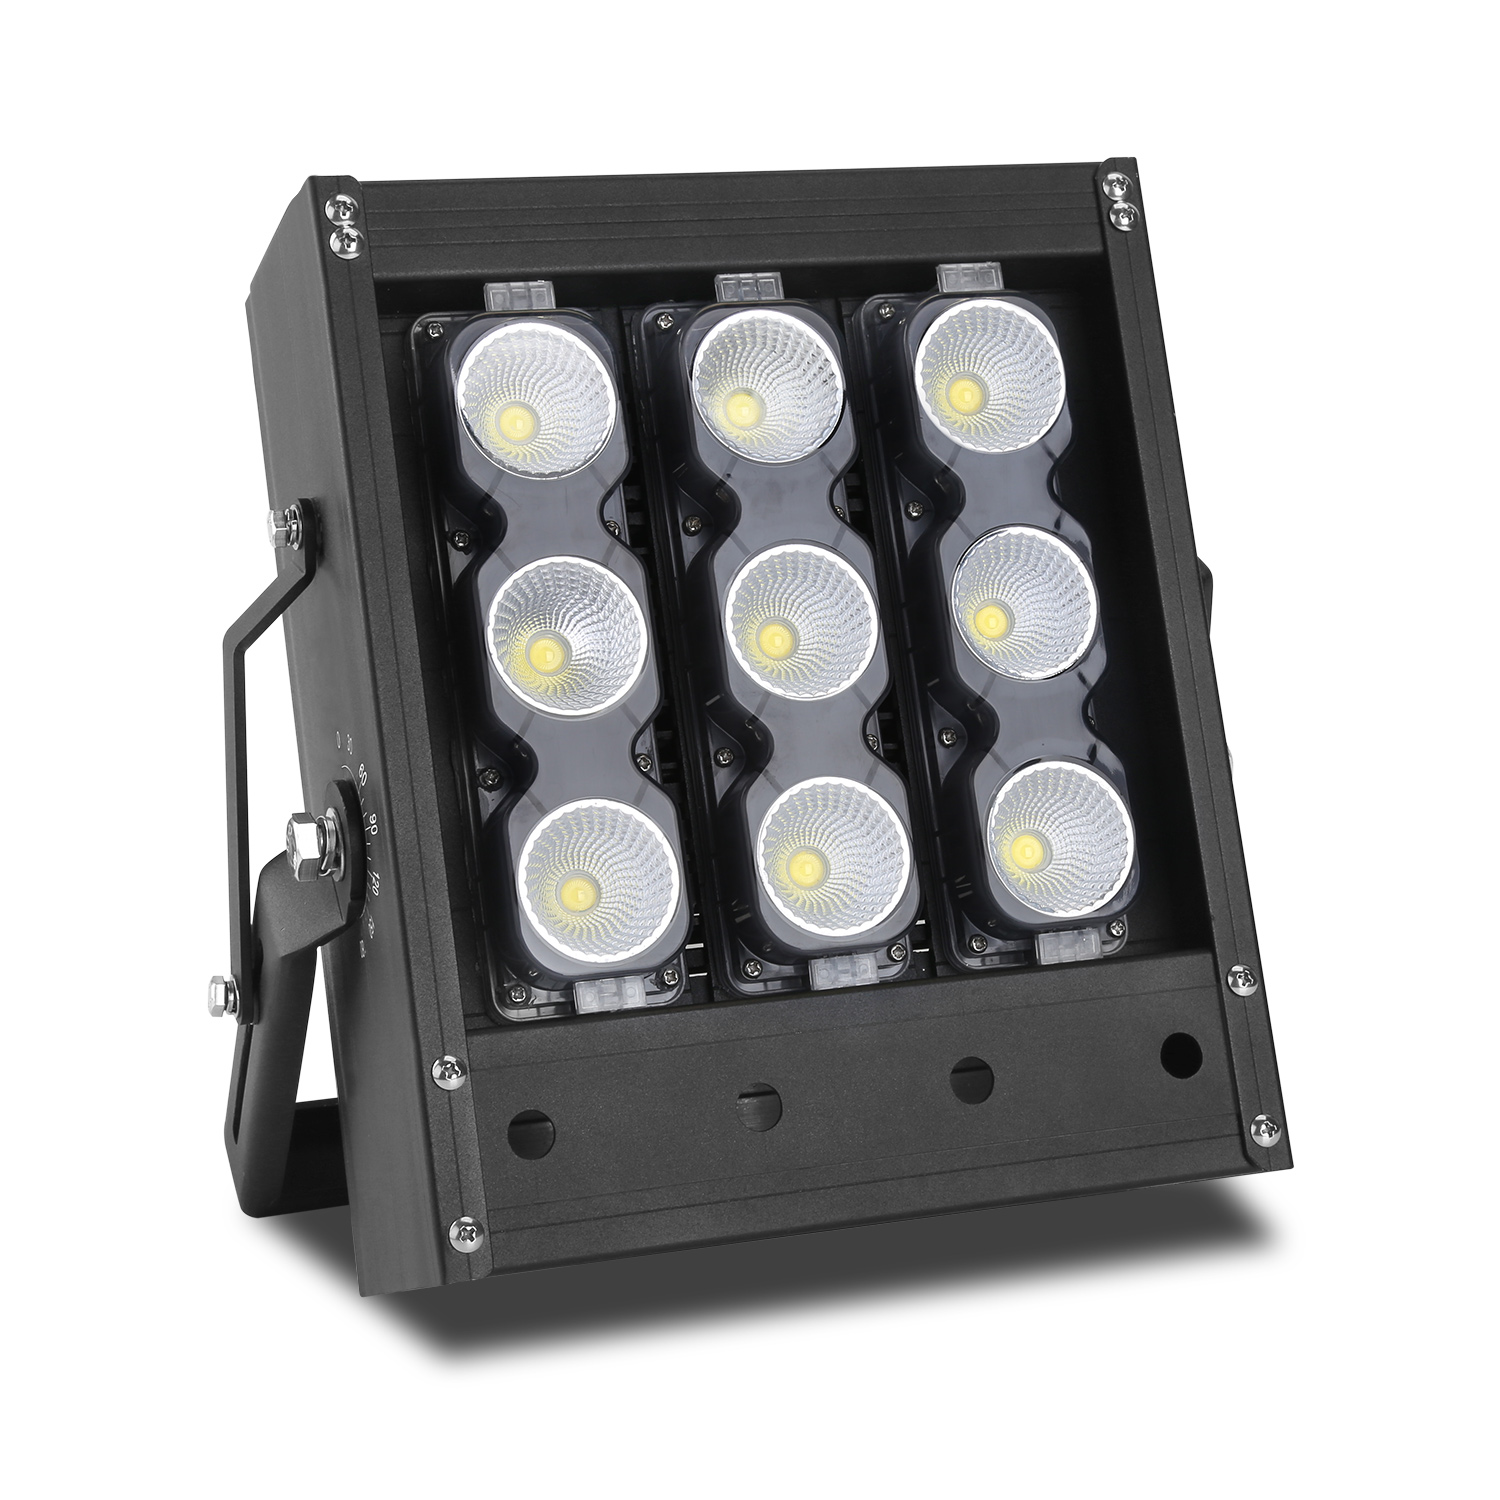 80-100w led flood light-flyledlighting.com